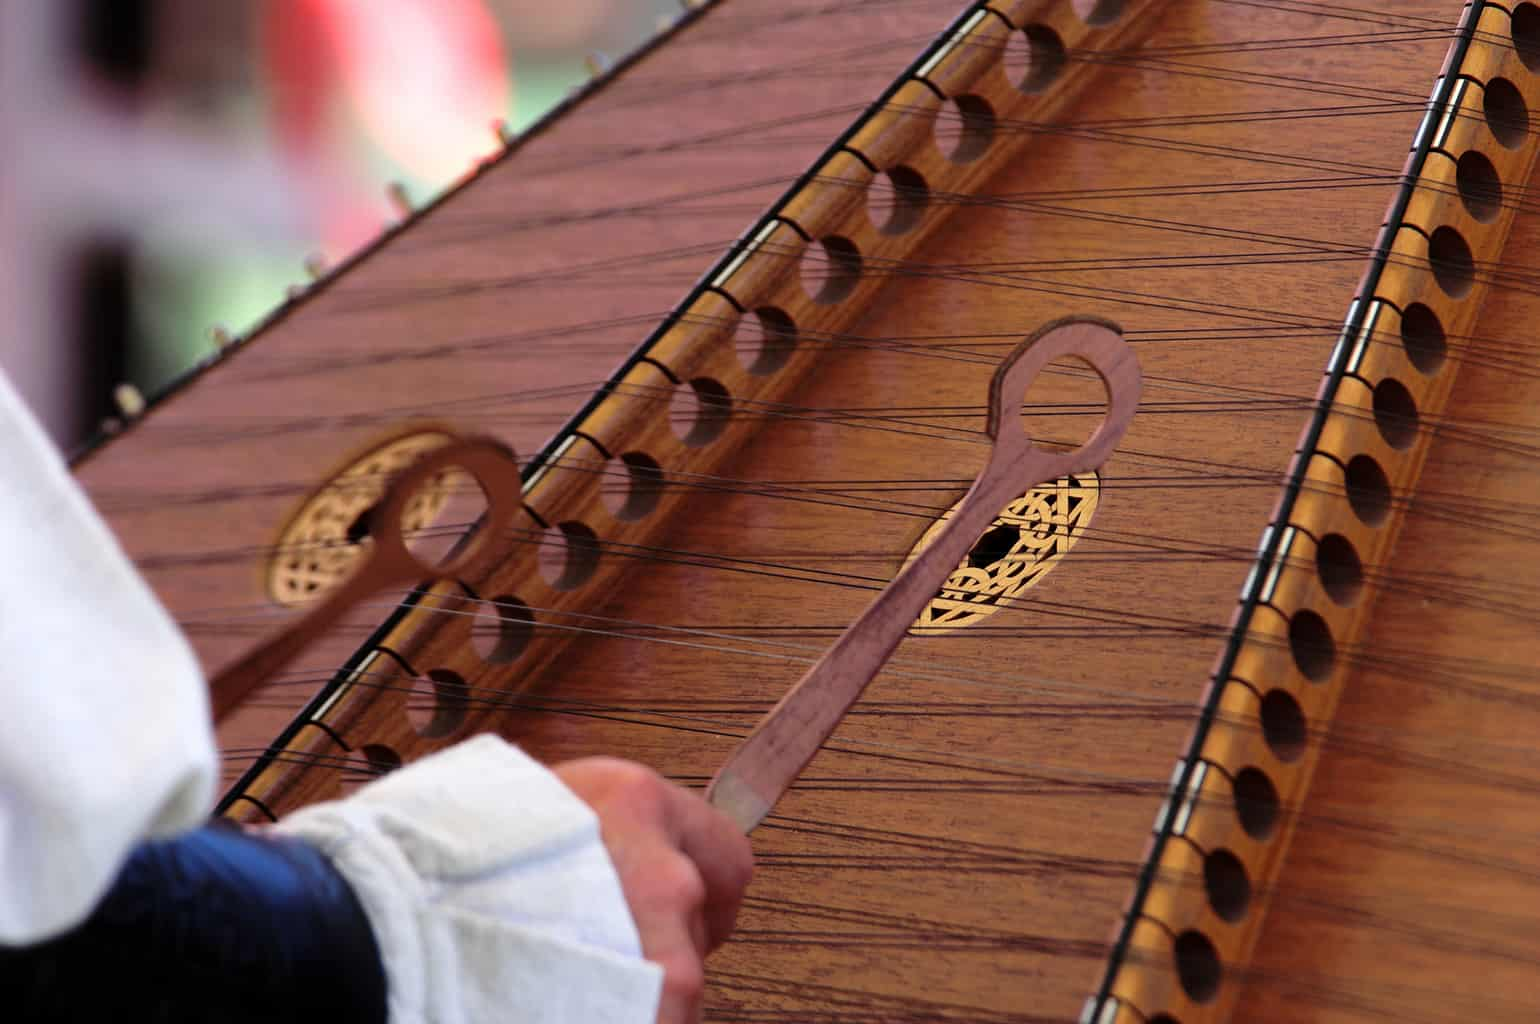 How to Play the Hammered Dulcimer